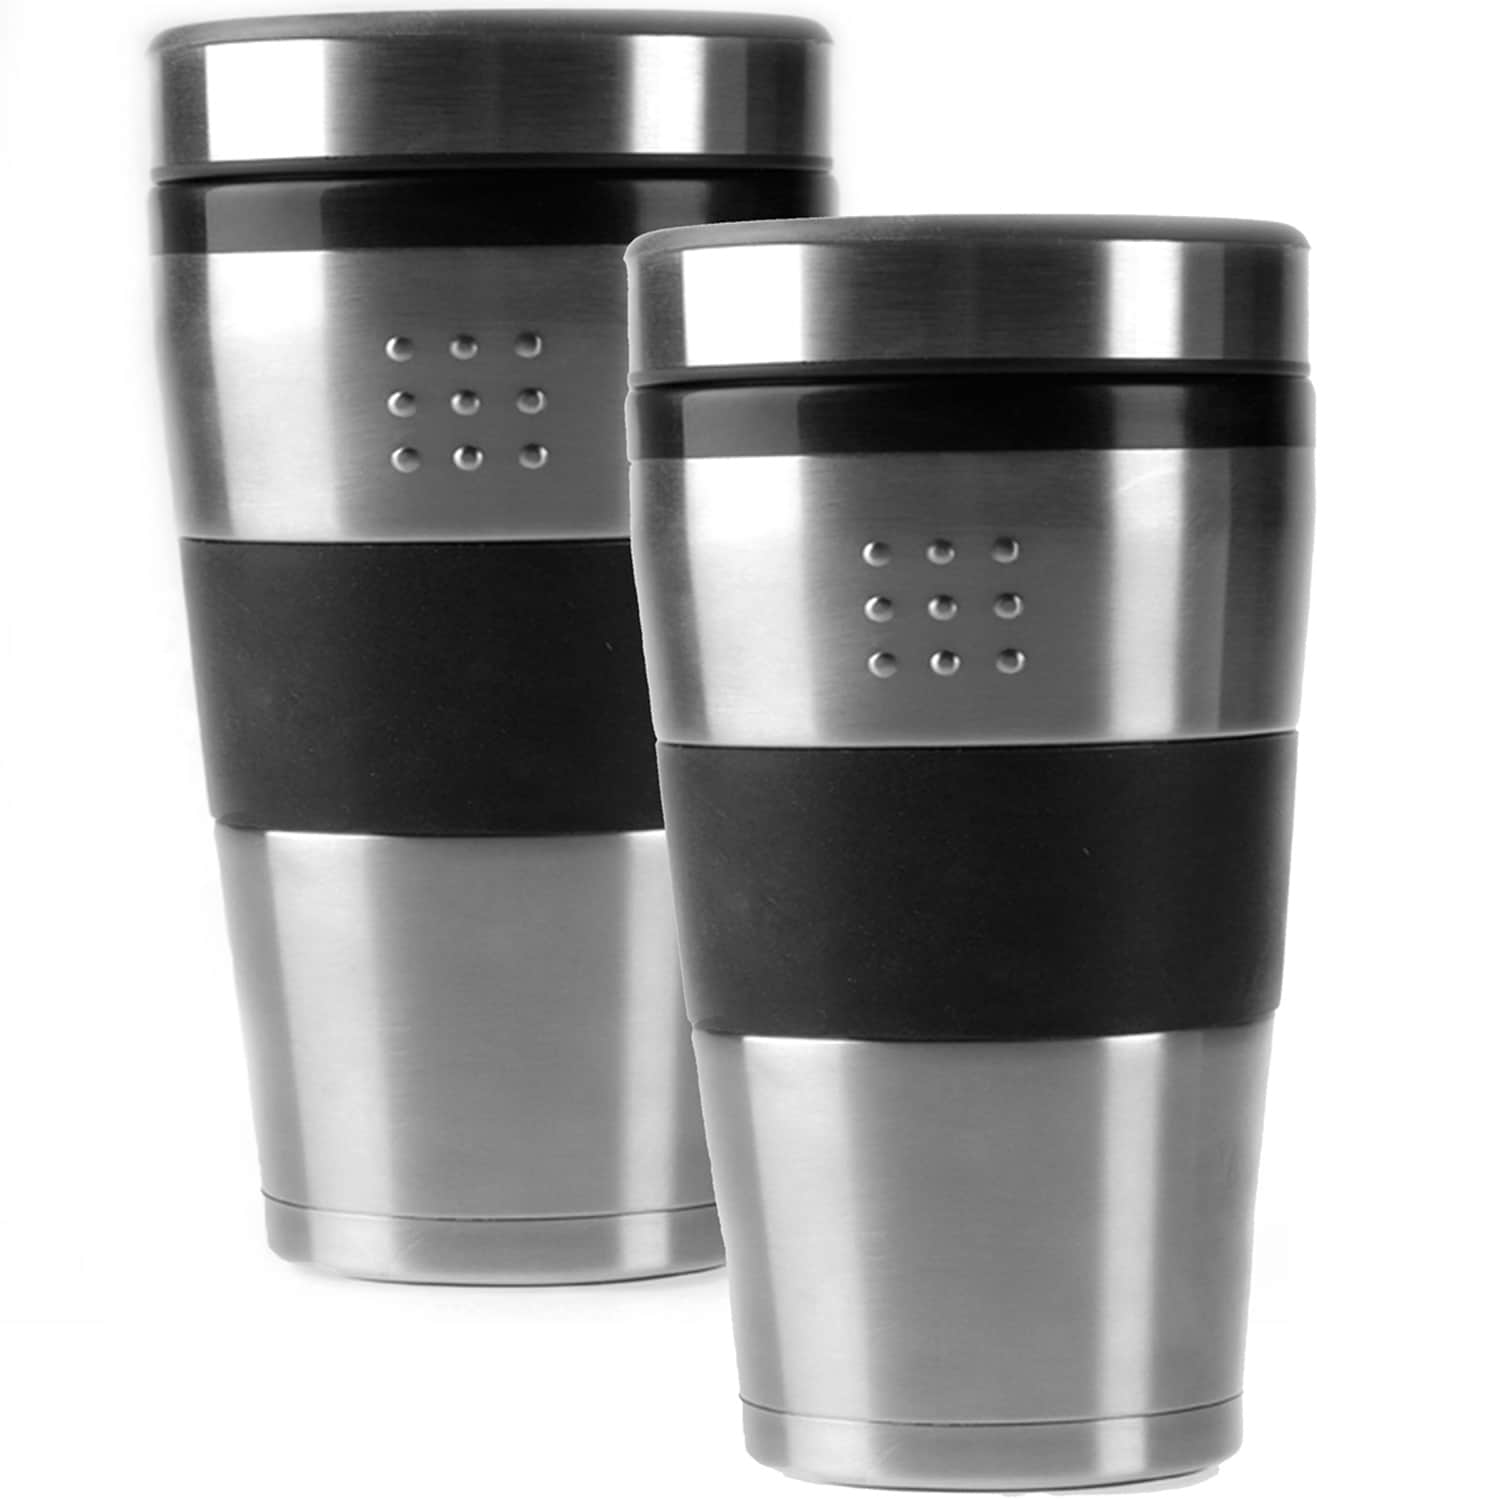 2 Mugs Berghoff Orion 16 Piece Ounce Stainless Steel Travel 0nwOPk